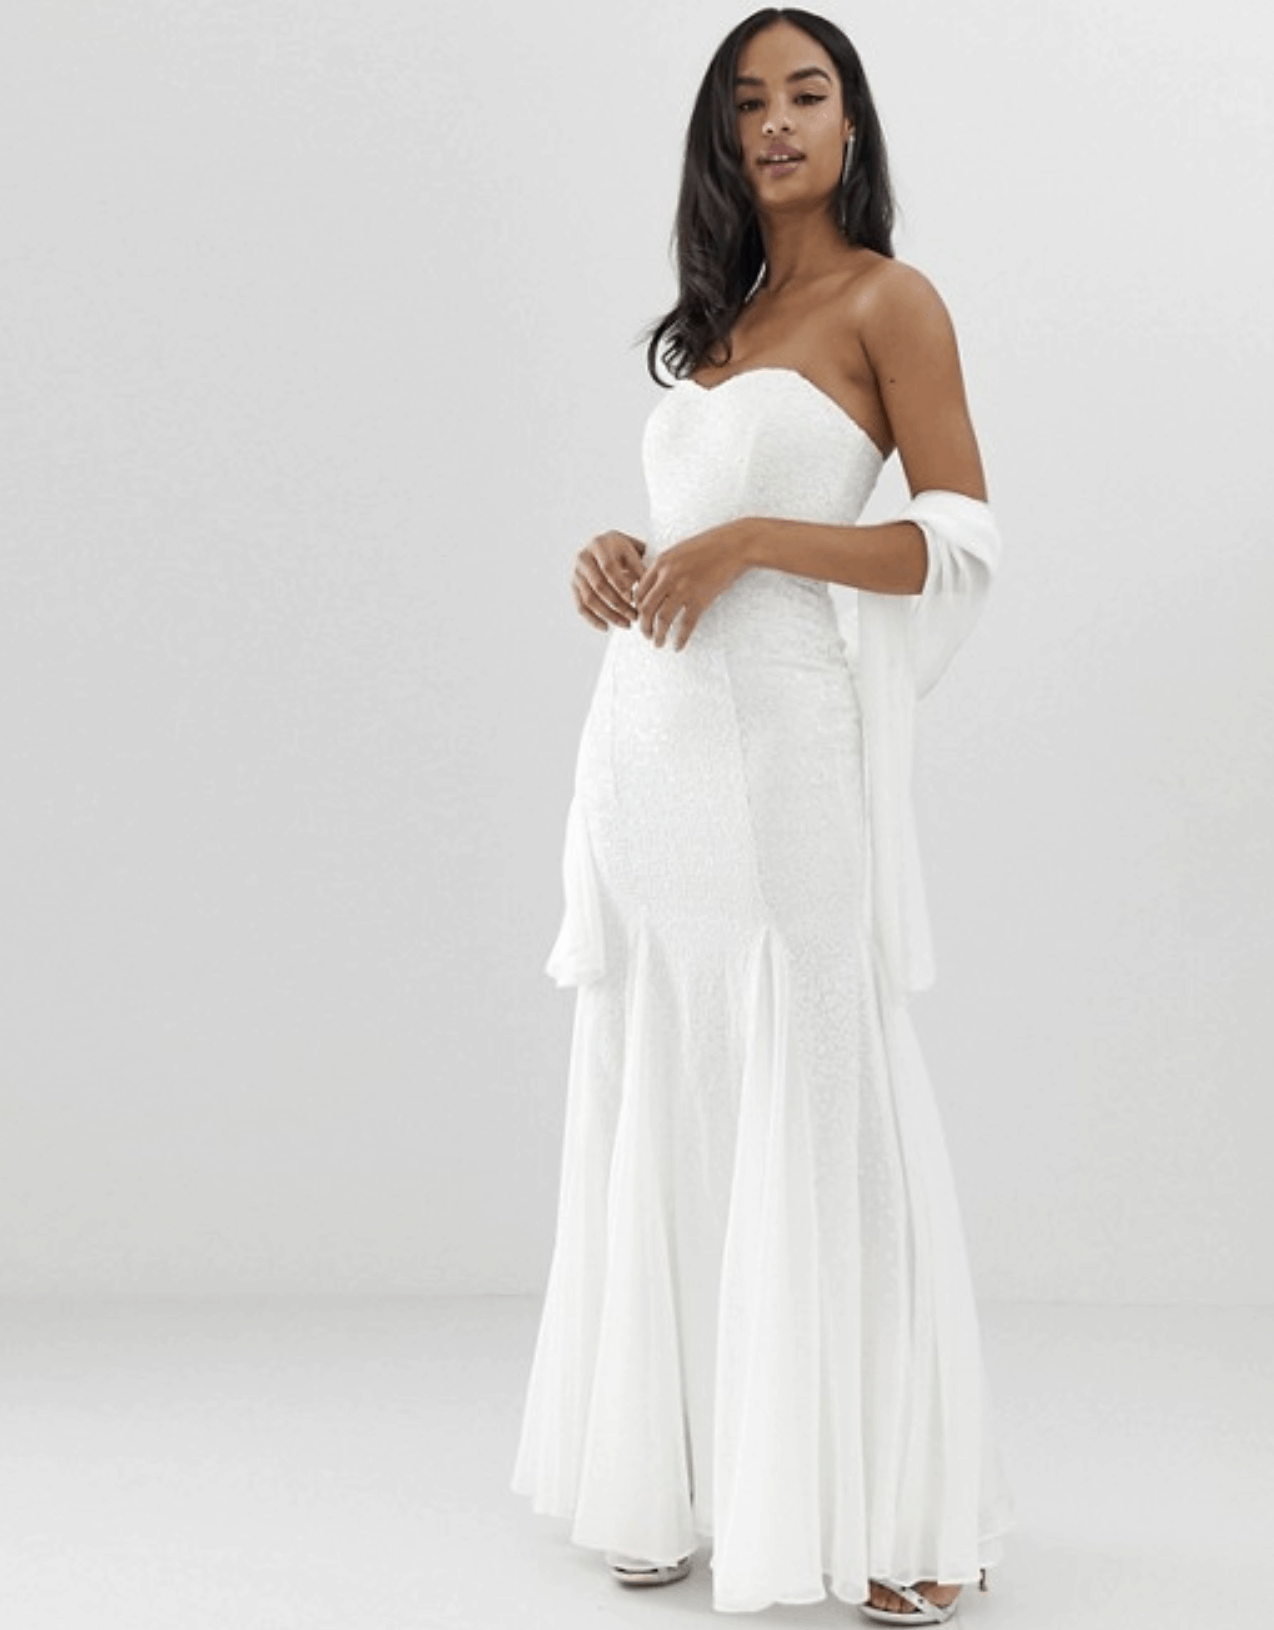 Cheap Affordable Bridal Gowns and Wedding Dresses City Goddess Bridal Bandeau Fishtail Maxi Dress